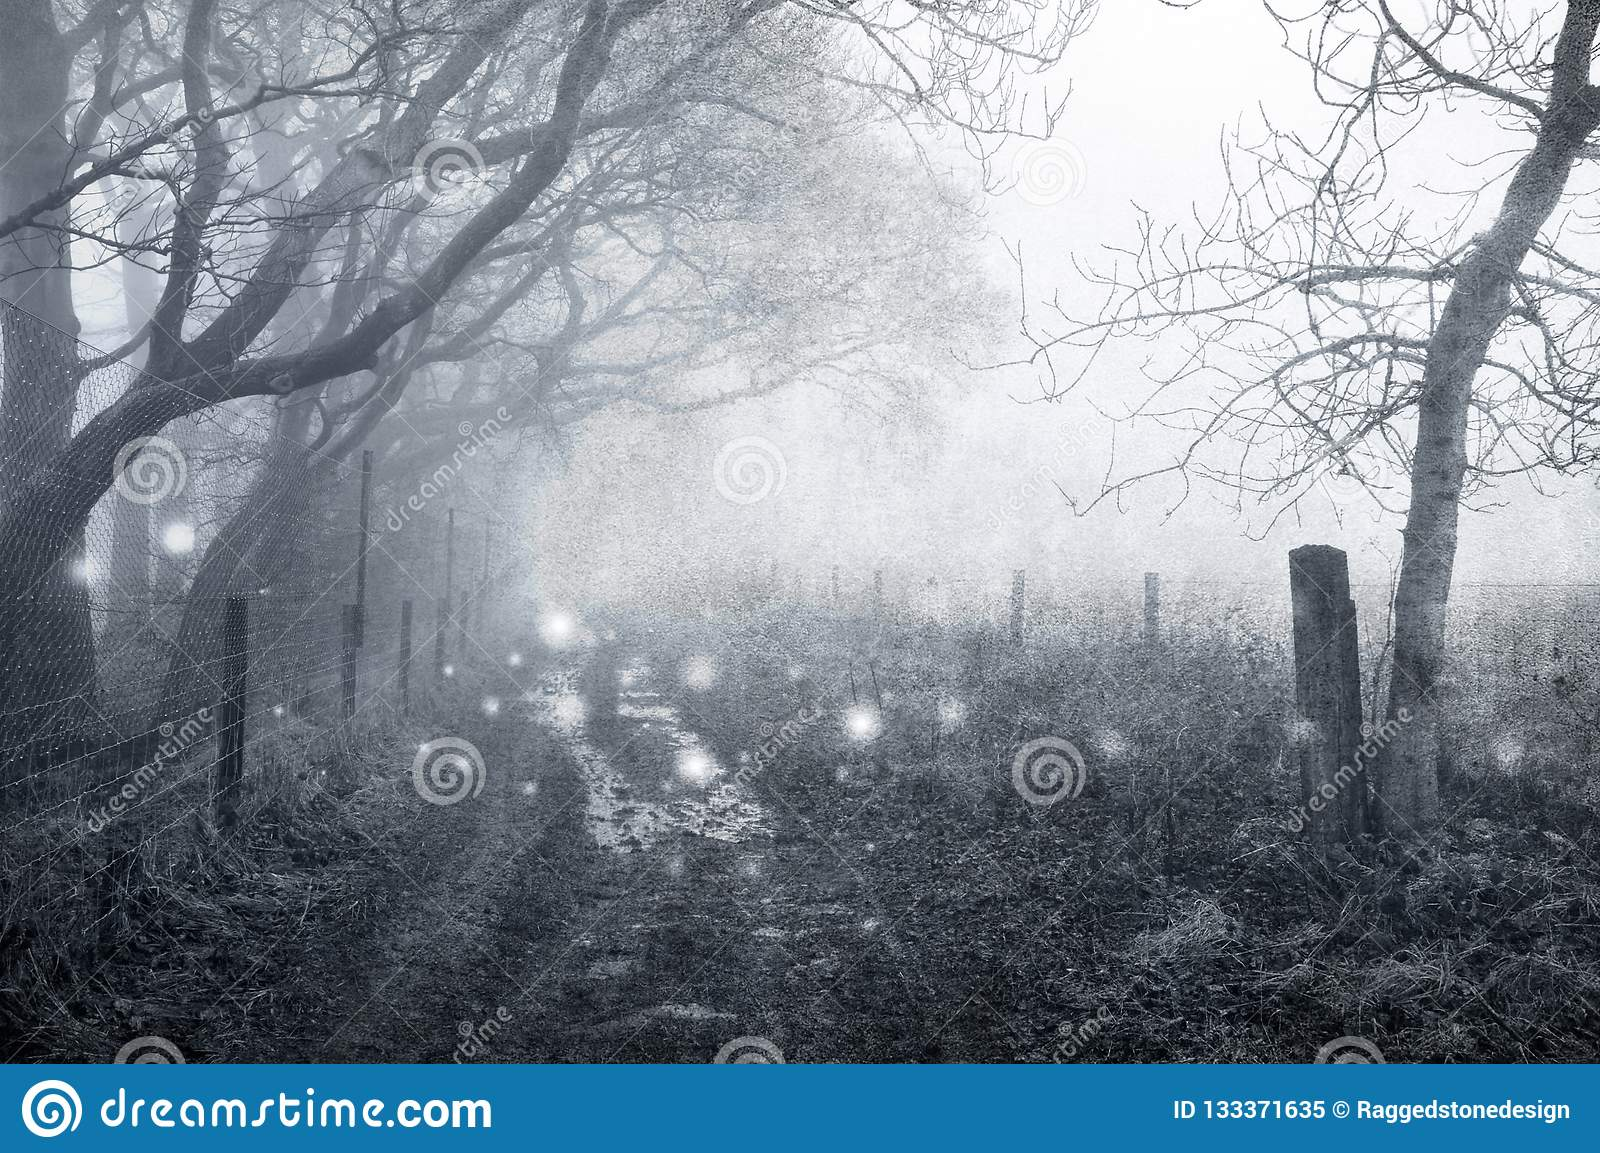 Floating In Twilight Winter Haze Like >> A Spooky Woodland Path In Winter With Ghostly Lights Floating Along